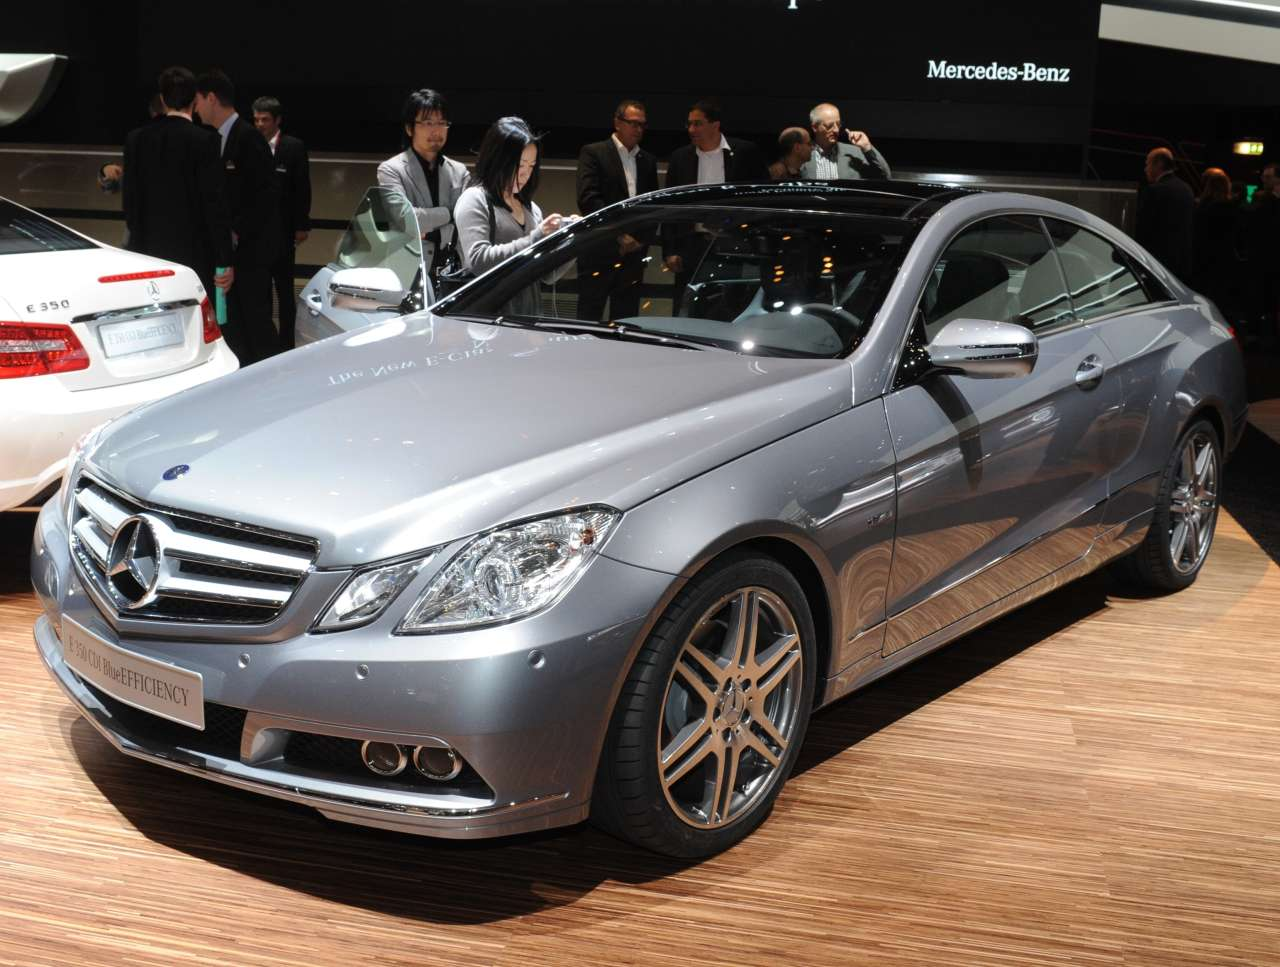 mercedes benz e klasse coupe technical details history. Black Bedroom Furniture Sets. Home Design Ideas